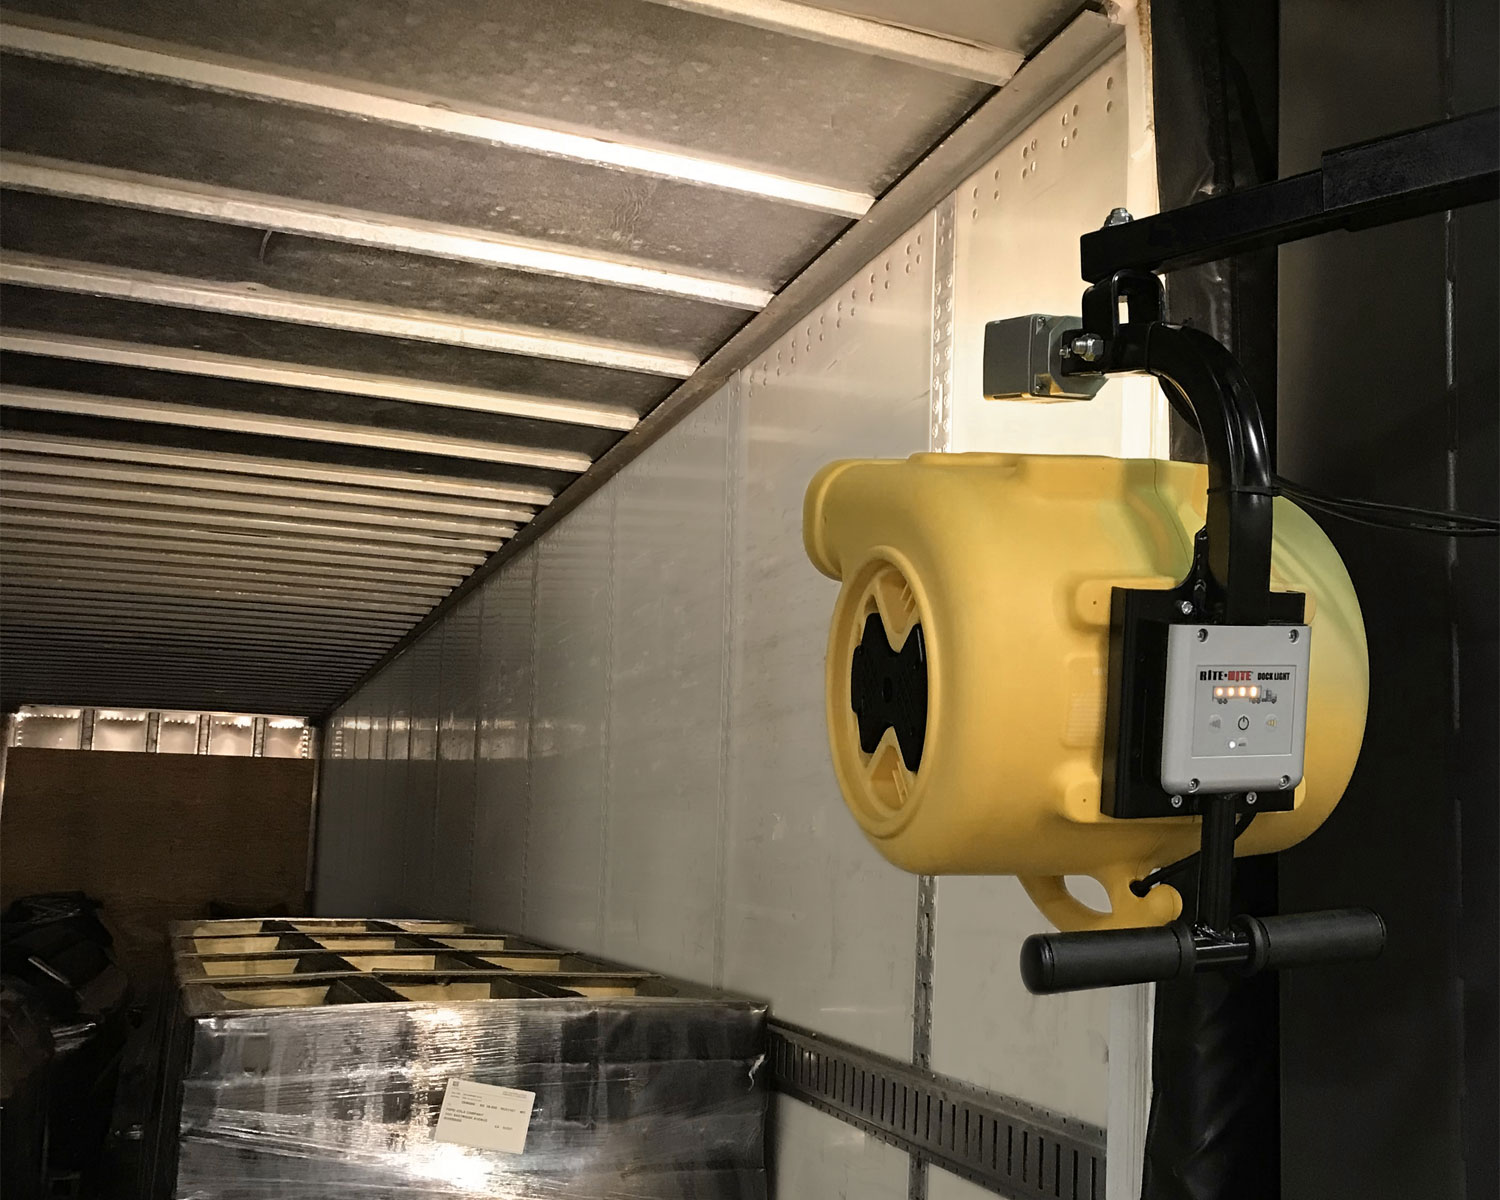 New Coolman 2800 loading dock trailer fan